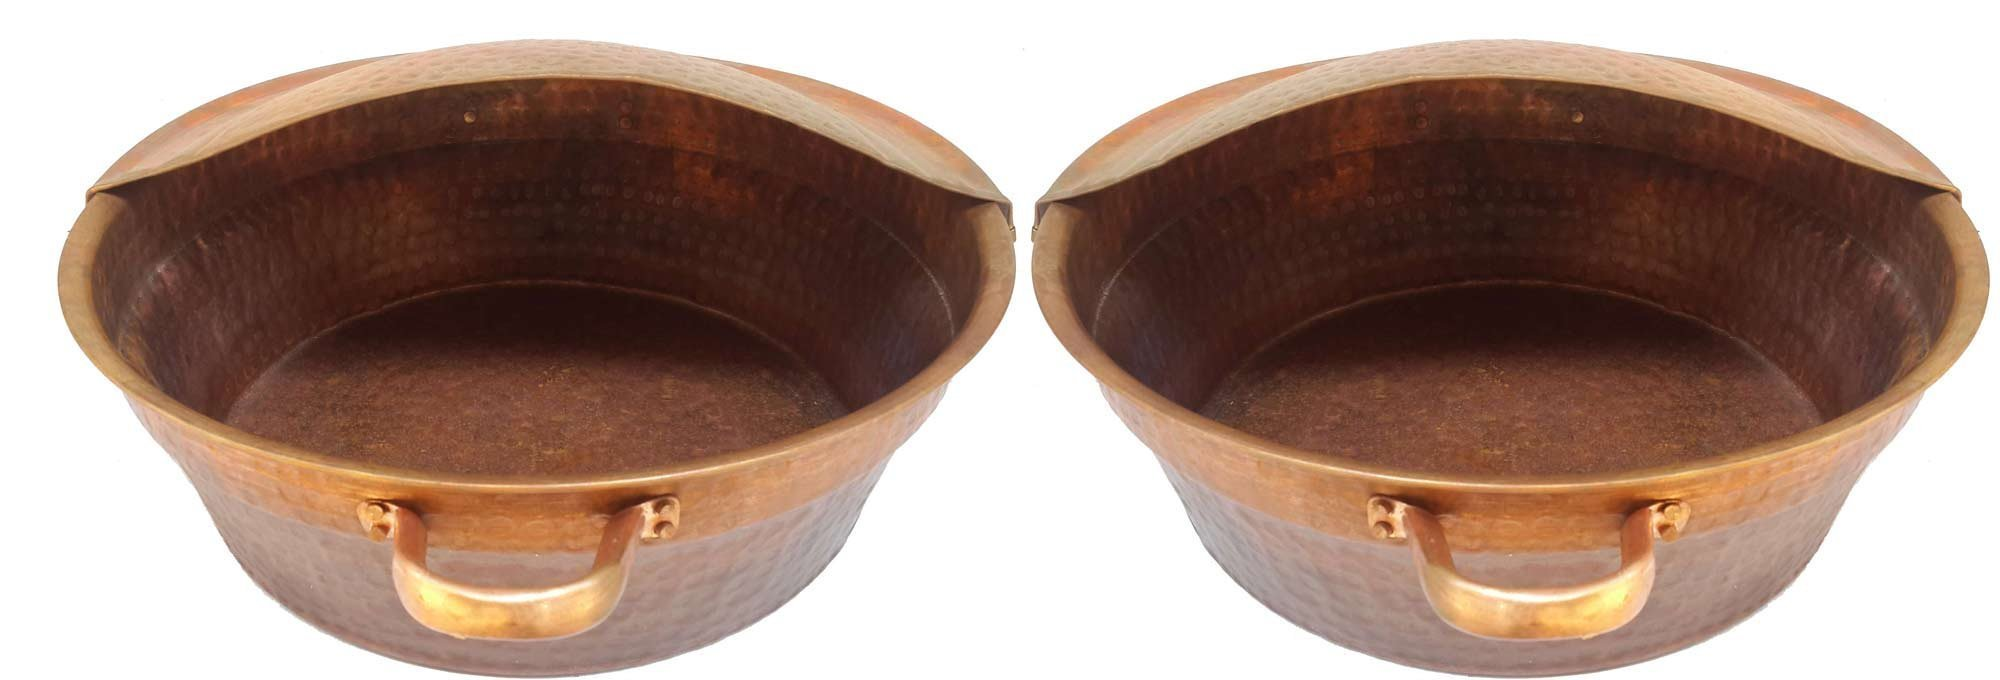 Egypt gift shops Pair Large Fire Burnt Massage Bath Buckets Handles Pedicure Spa Styling Salon Bowls + 2 Foot Rests Supports by Egypt Gift Shops